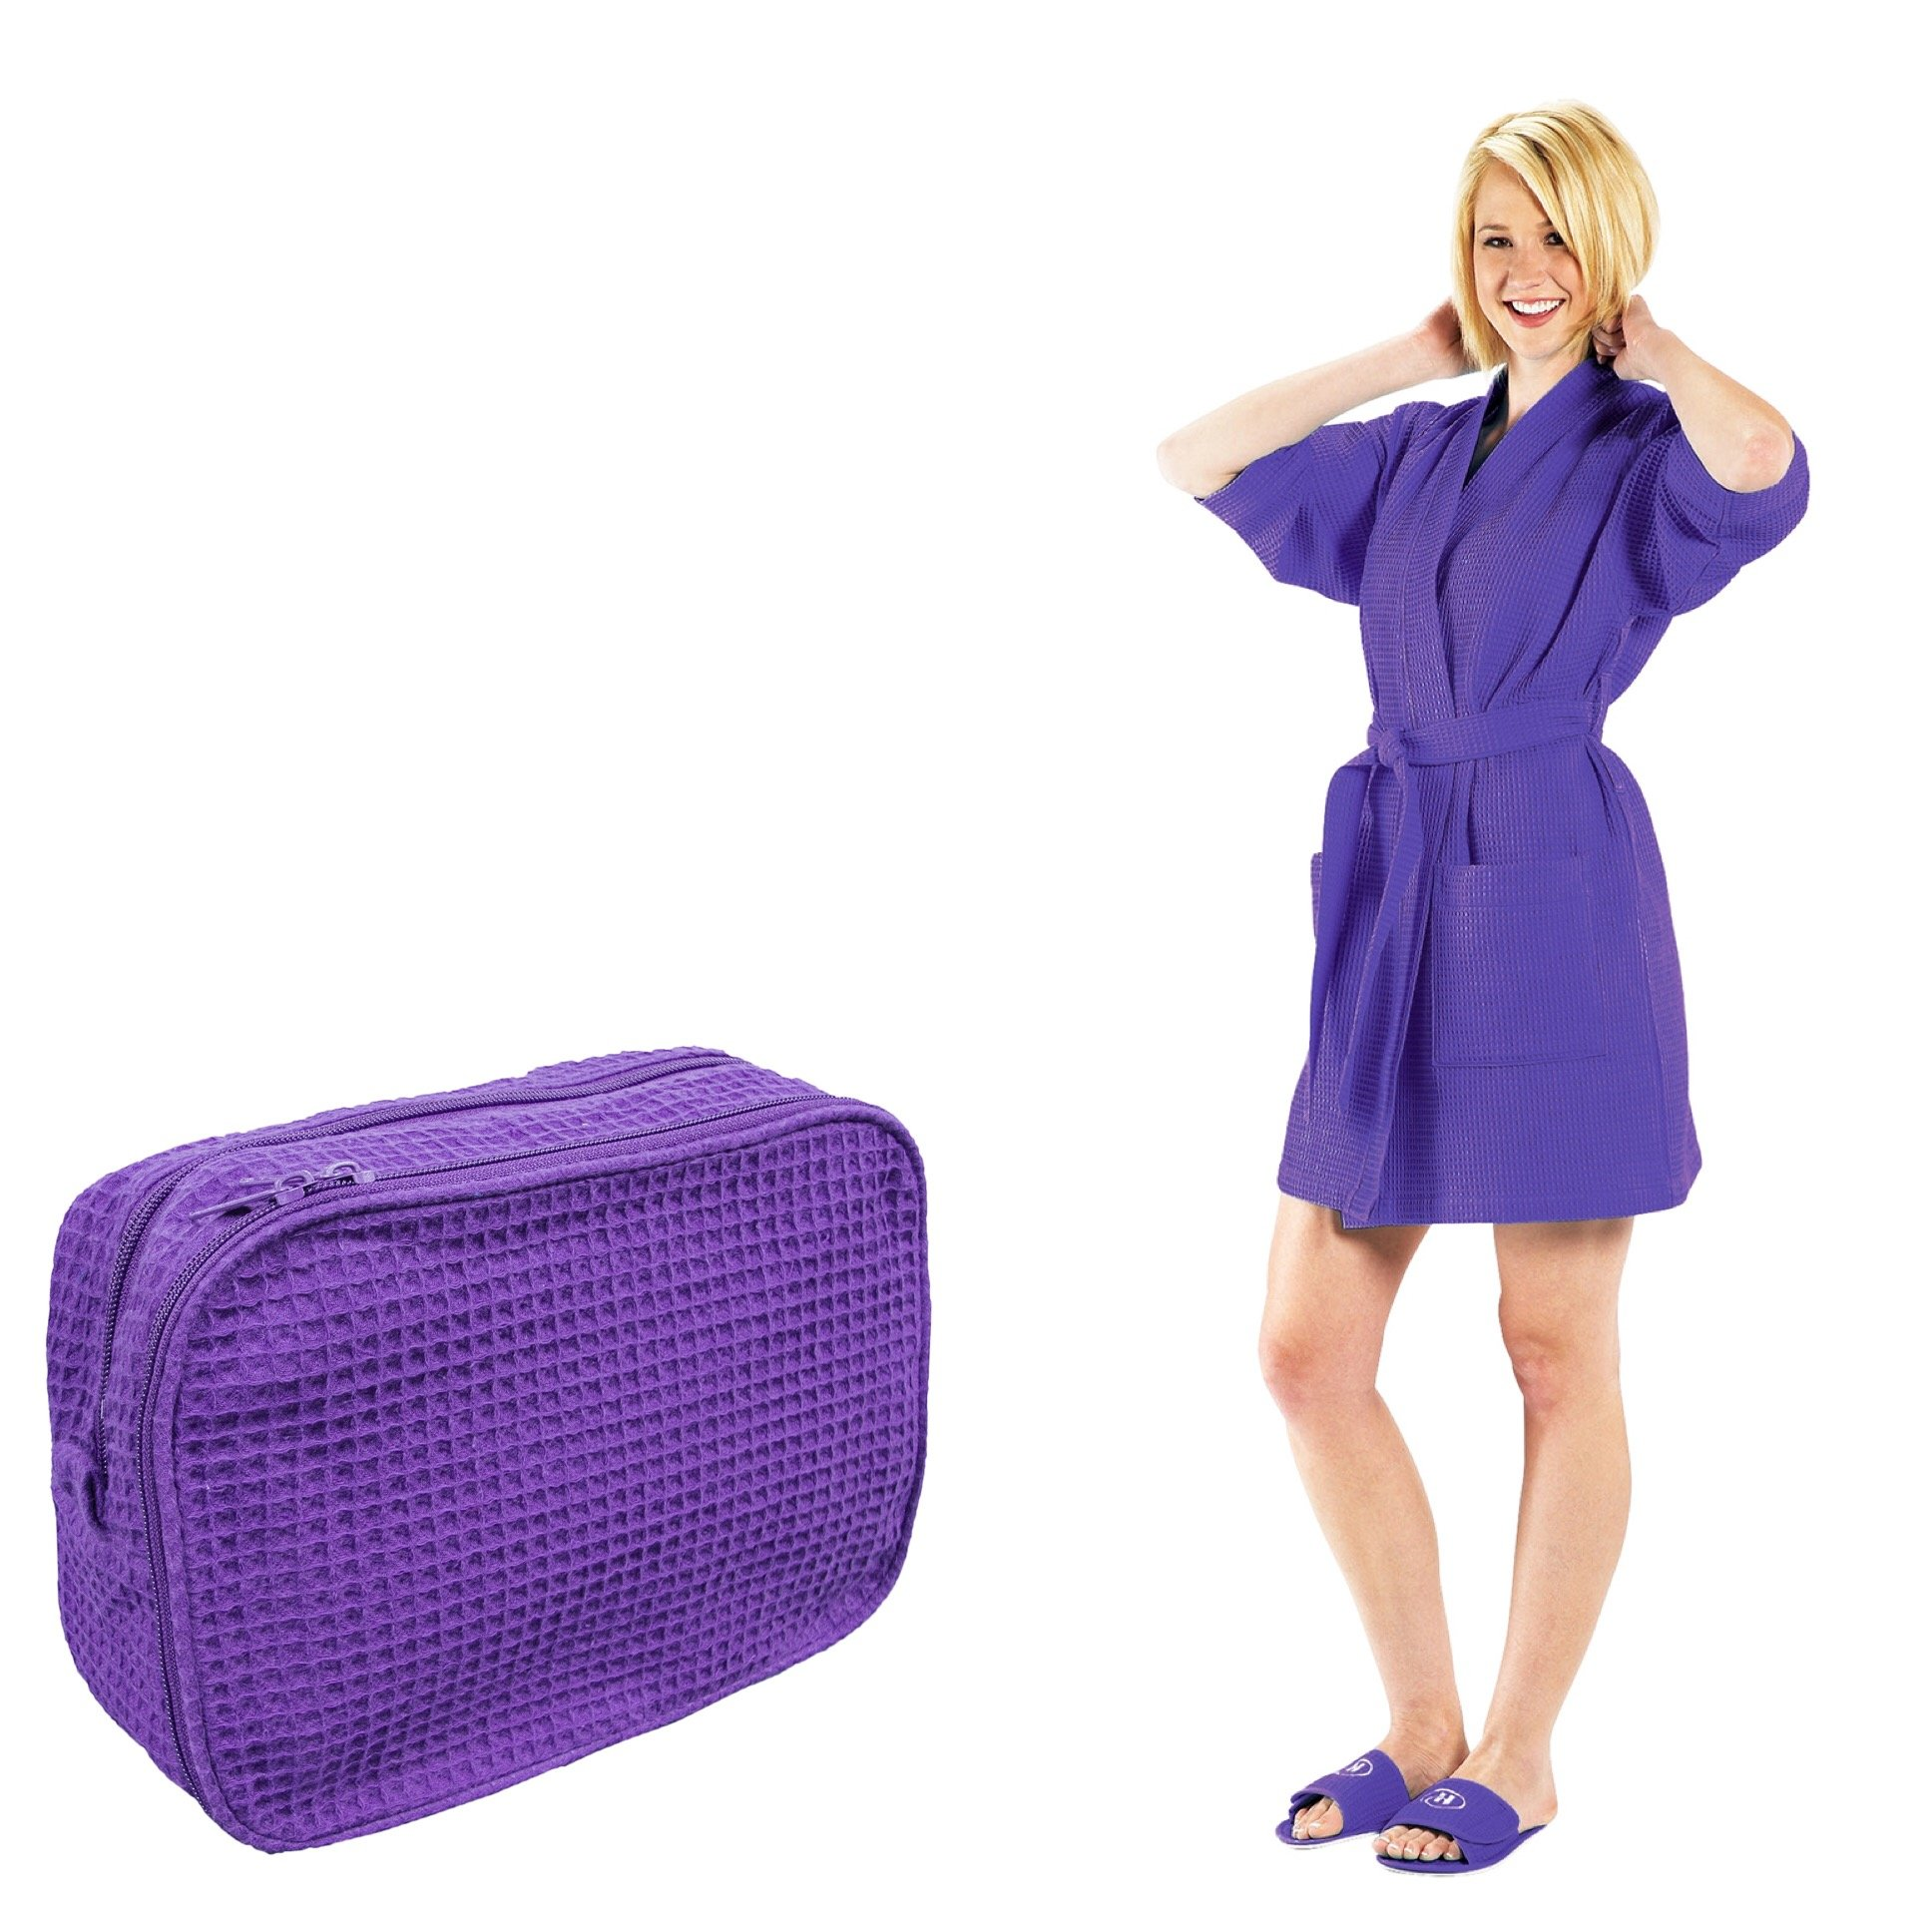 NobleHomeShop Women's Waffle Weave Thigh Length Bathrobe and Make-Up Bag (BUNDLE! Perfect For College!) (XXL, Purple)